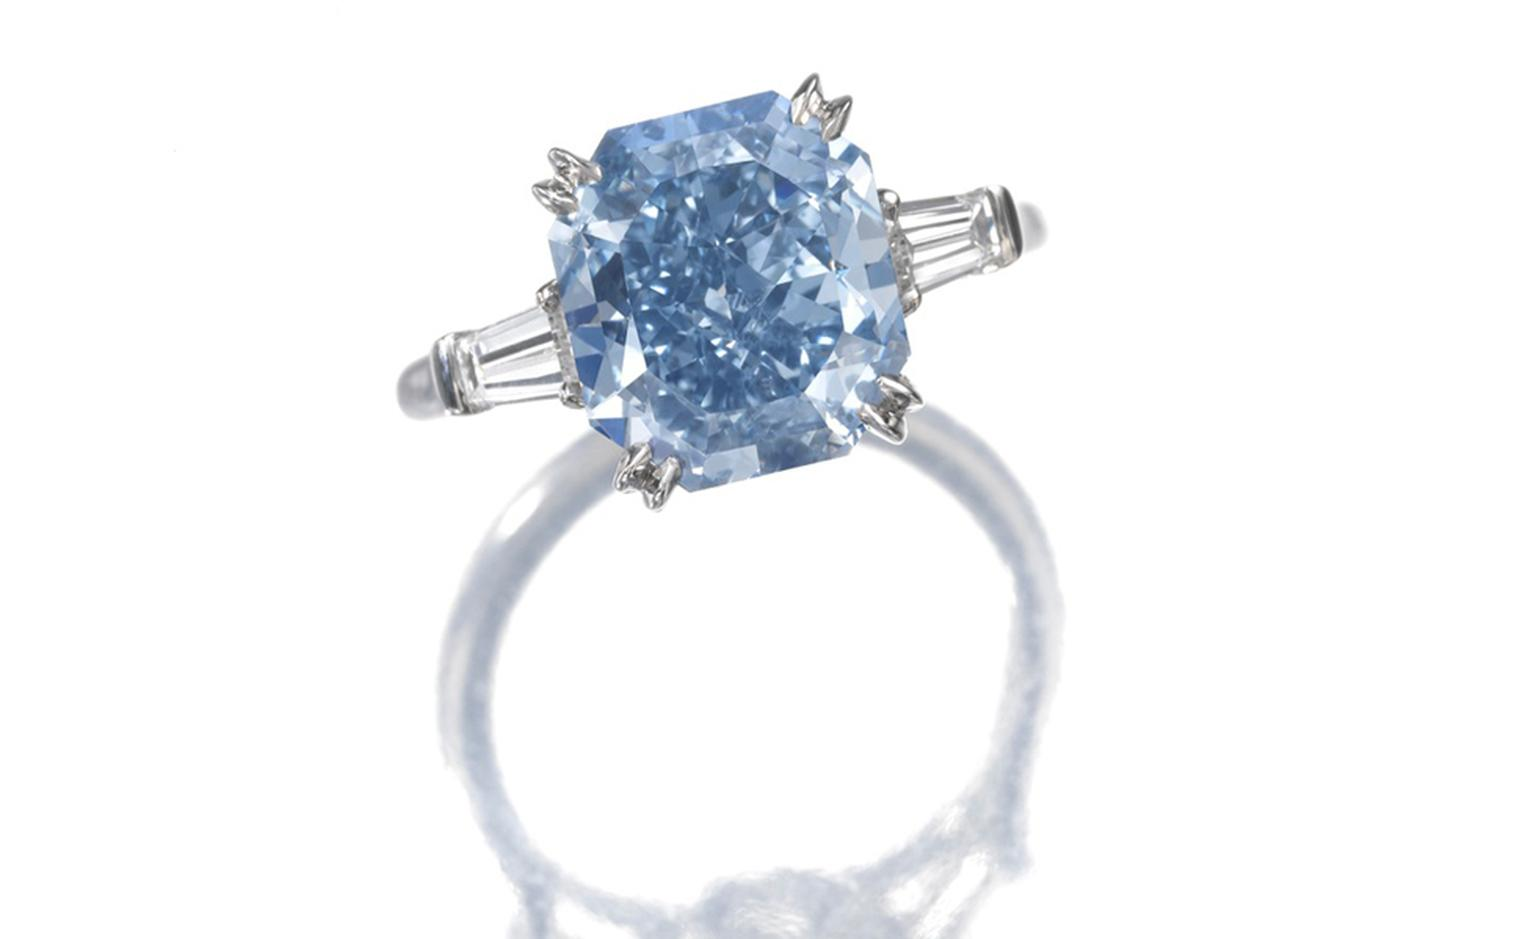 An impressive Fancy Vivid Blue diamond ring, featuring a modified cushion-shaped stone of 4.16 carats. CHF 3'000'000 – 4'000'000 / US$ 3'300'000 – 4'300'000